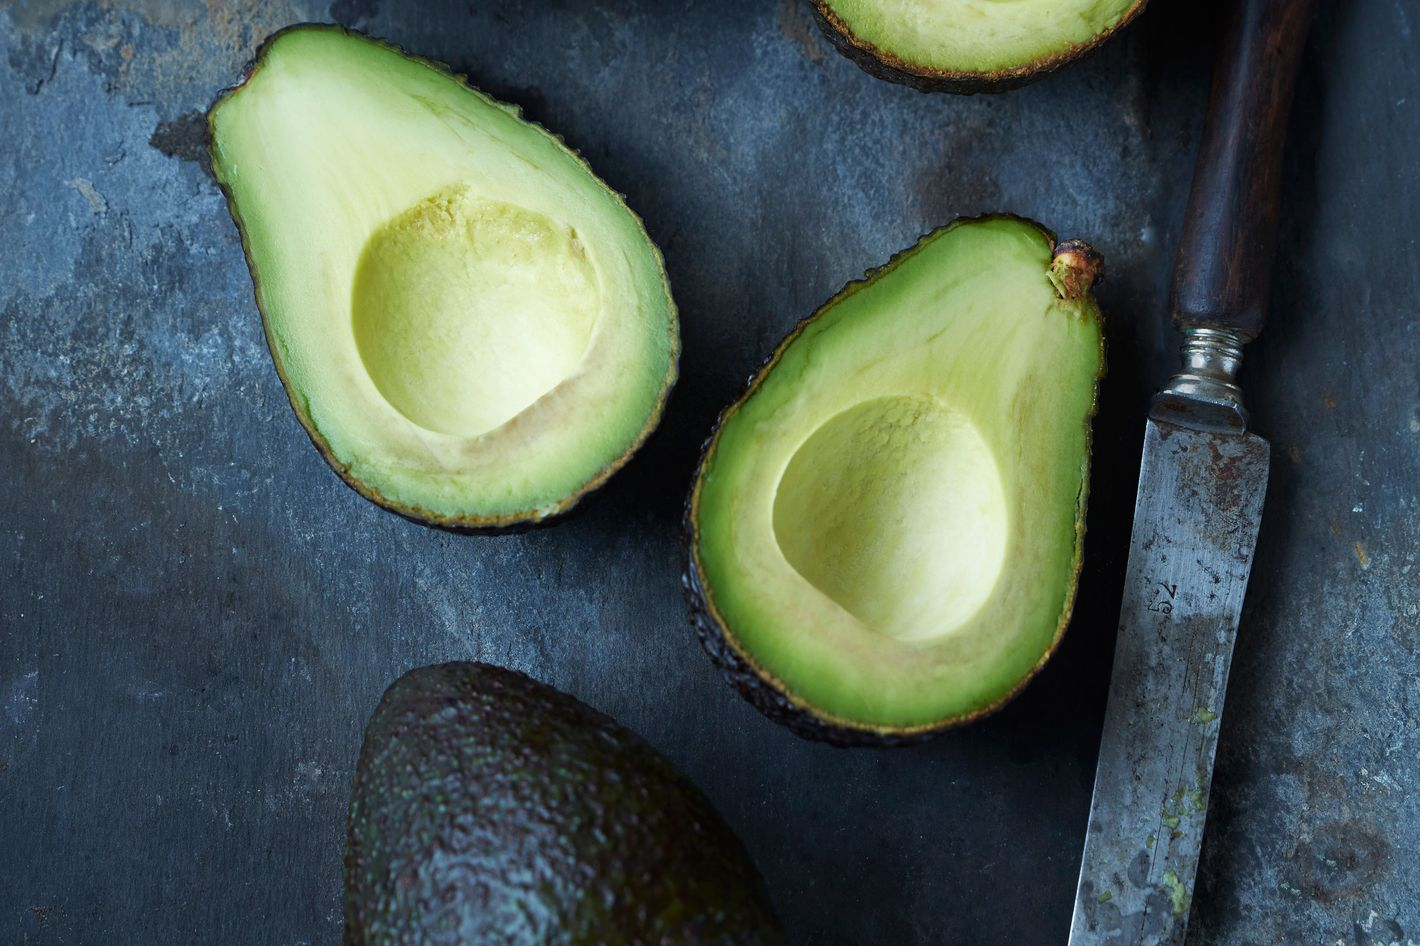 is there such a thing as too much avocado?